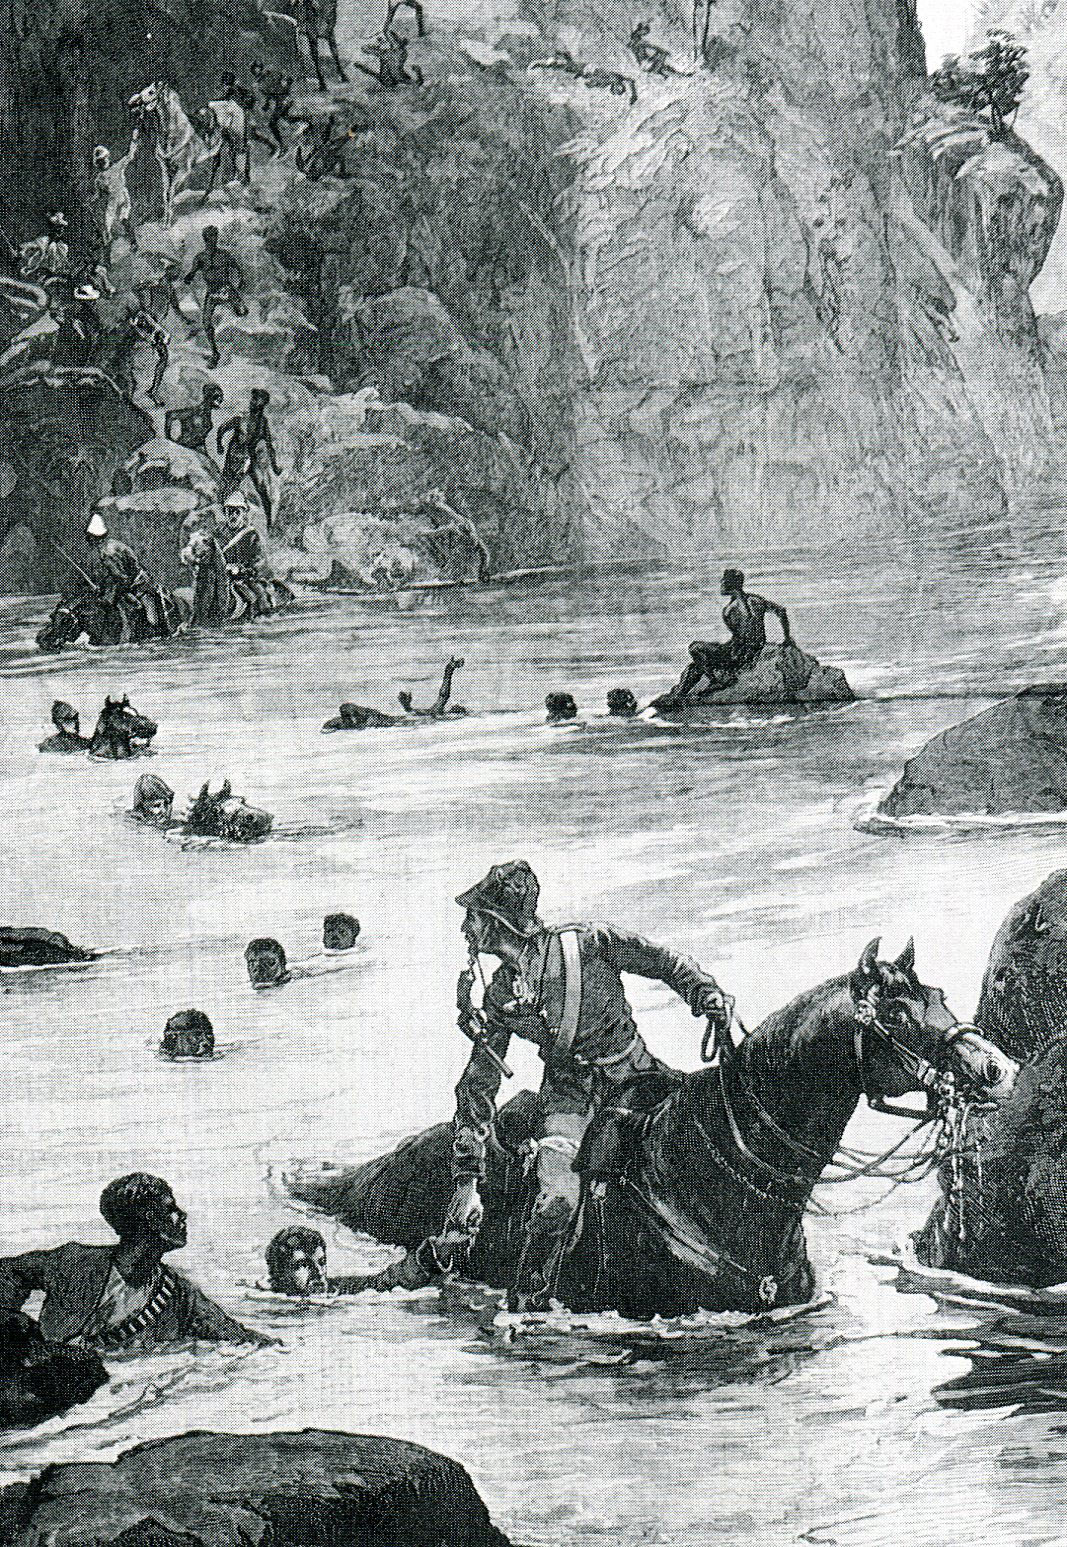 British troops escaping across the Tugela River after the Battle of Isandlwana on 22nd January 1879 in the Zulu War